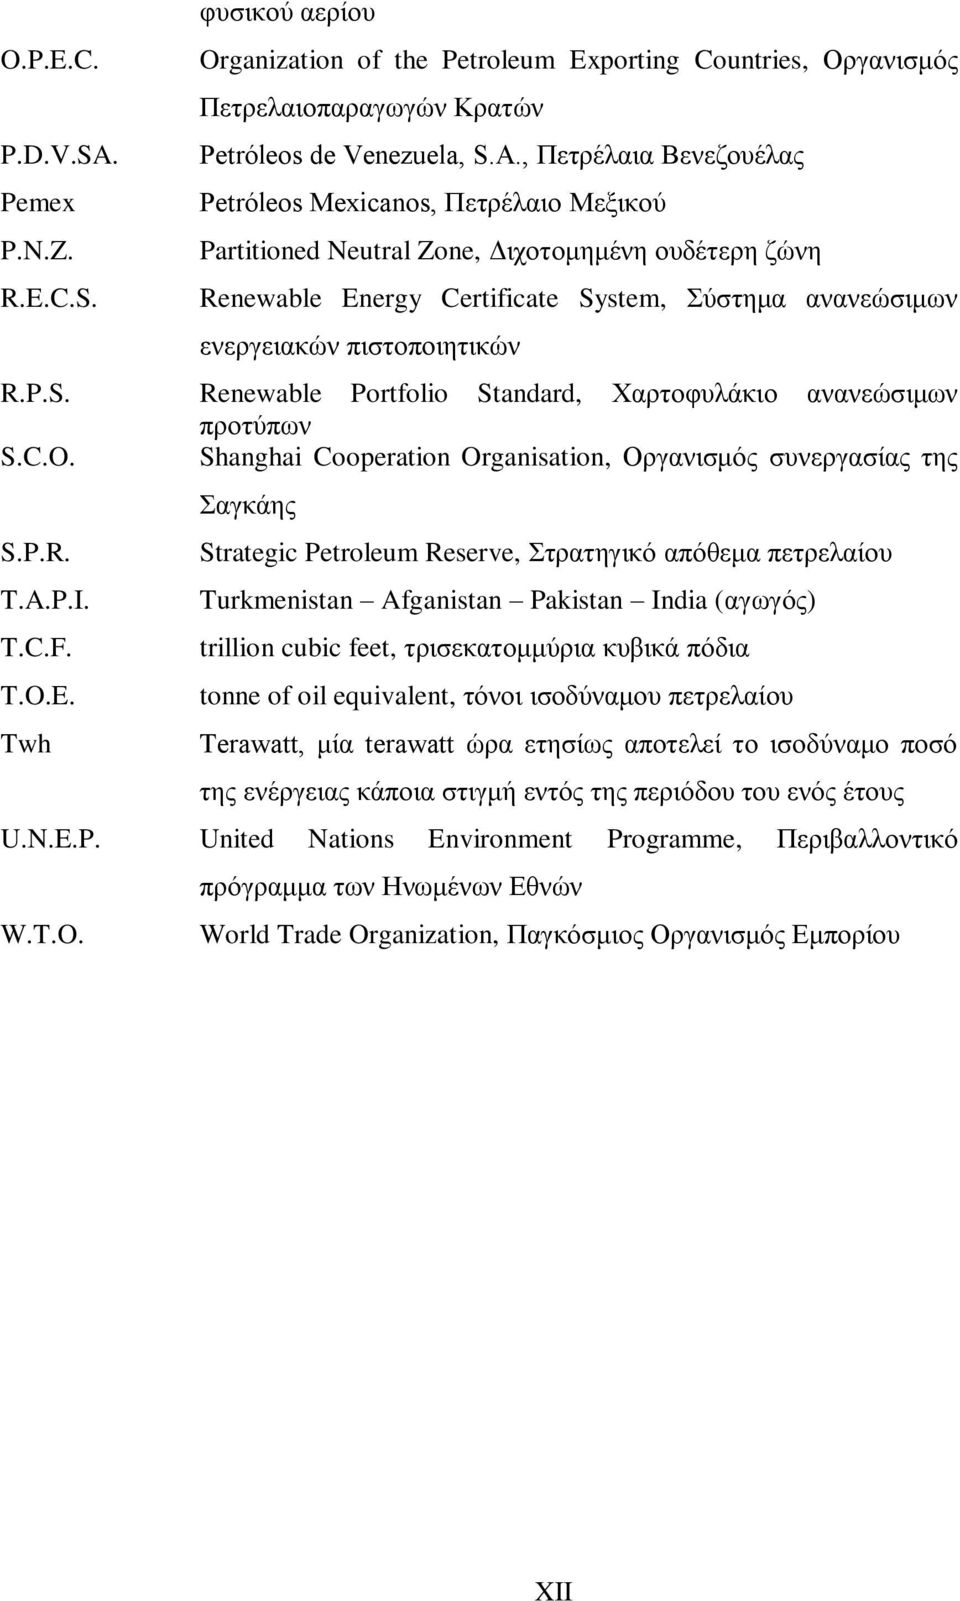 C.O. Shanghai Cooperation Organisation, Οργανισμός συνεργασίας της Σαγκάης S.P.R. Strategic Petroleum Reserve, Στρατηγικό απόθεμα πετρελαίου T.A.P.I. Turkmenistan Afganistan Pakistan India (αγωγός) T.